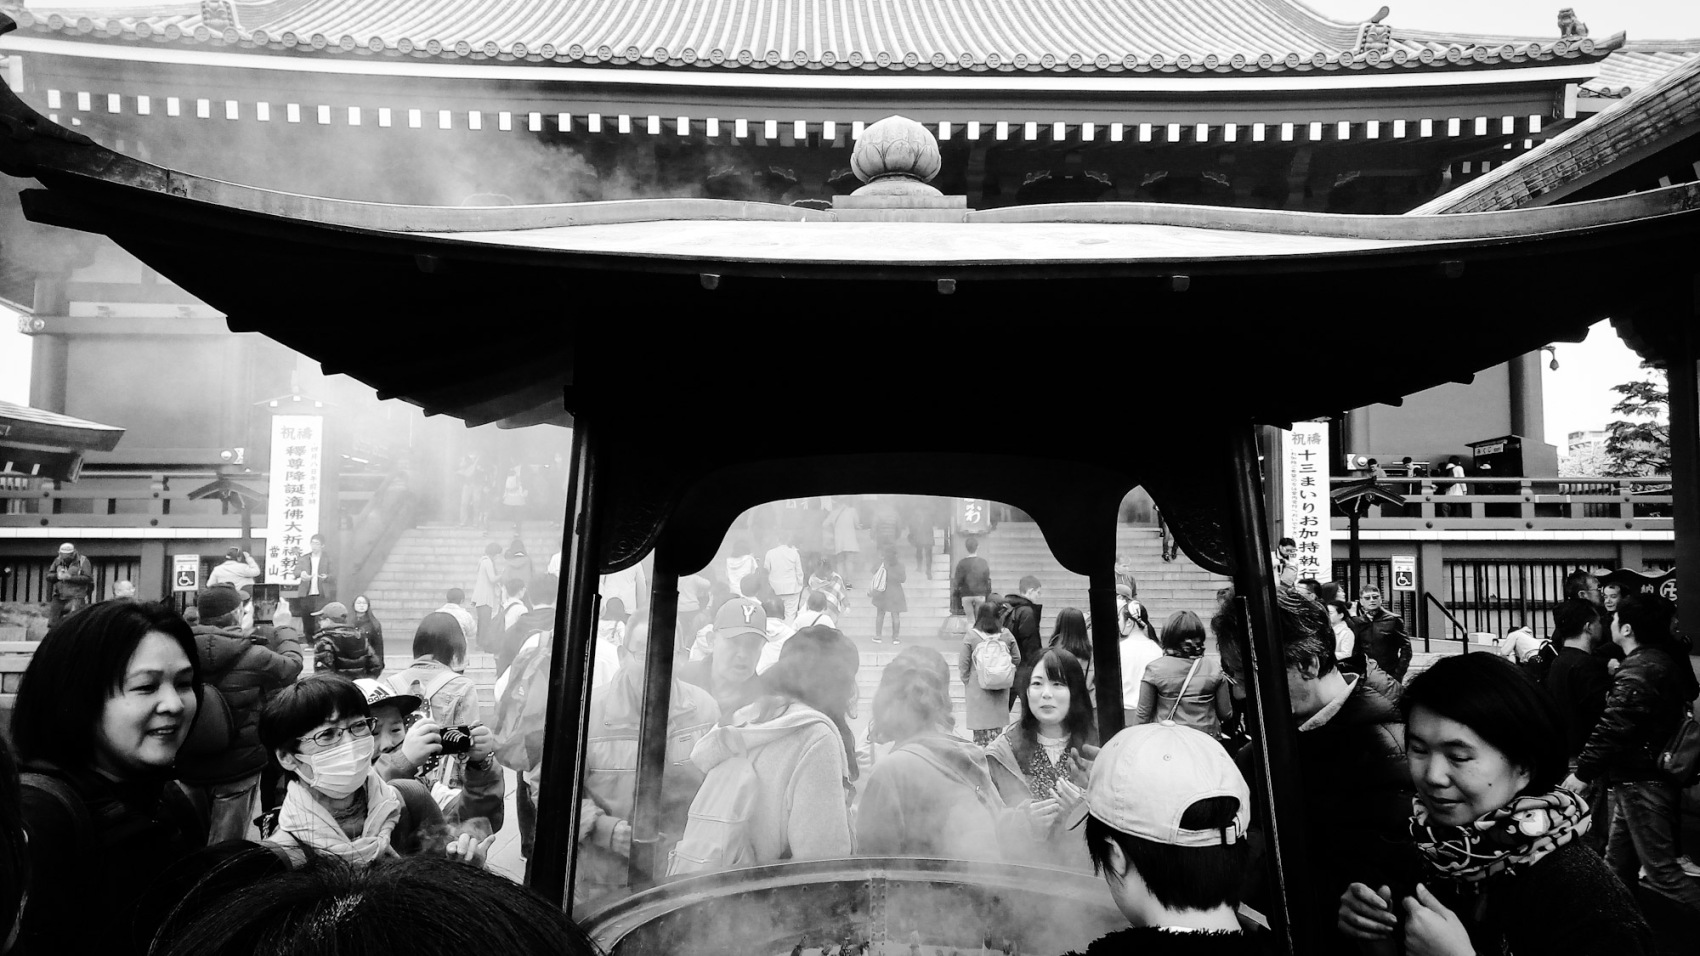 Urban photo – Asakusa, Tokyo, Japan. 'Senso-ji Temple 3.' Complete image from my recent travel art blog article 'Sakura Japan.' Now online - sketchbookexplorer.com @davidasutton @sketchbookexplorer Facebook.com/davidanthonysutton #photography #japan #tokyo #sakura #sensojitemple #buddhism #travel #travelblog #cherryblossom #cherryblossomseason #cherryblossomjapan